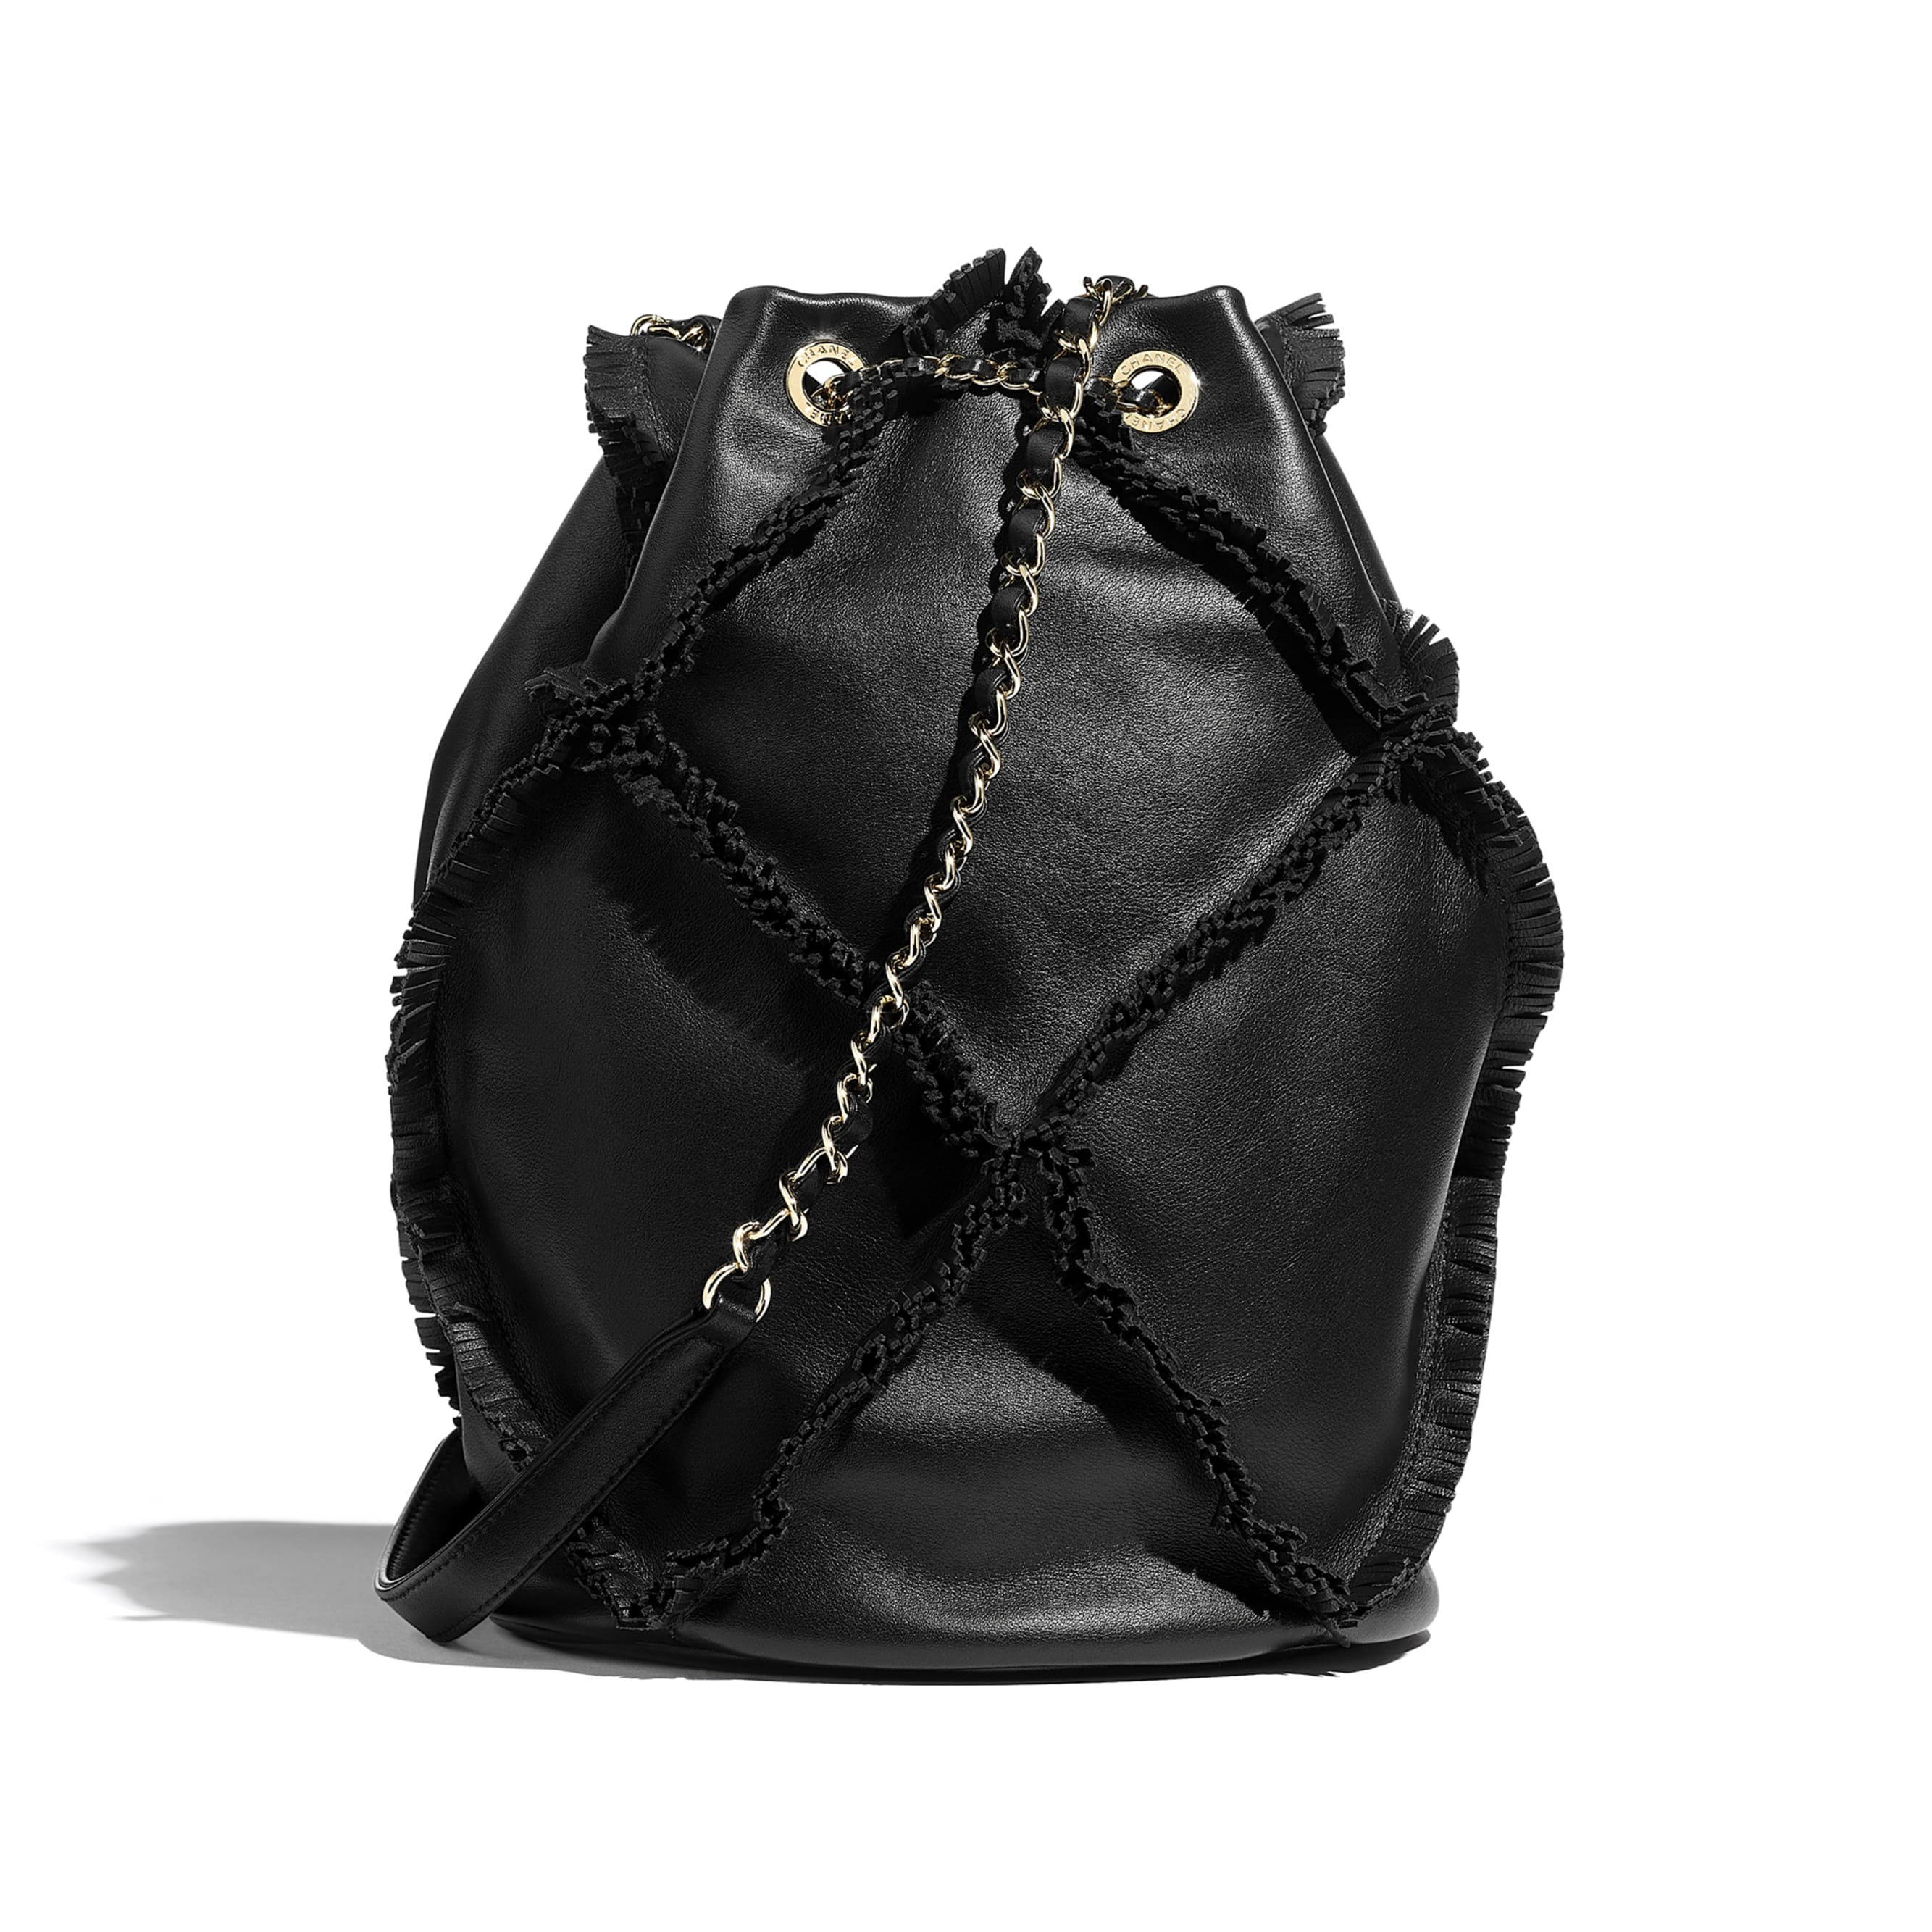 Drawstring Bag - Black - Calfskin & Gold-Tone Metal - Alternative view - see standard sized version